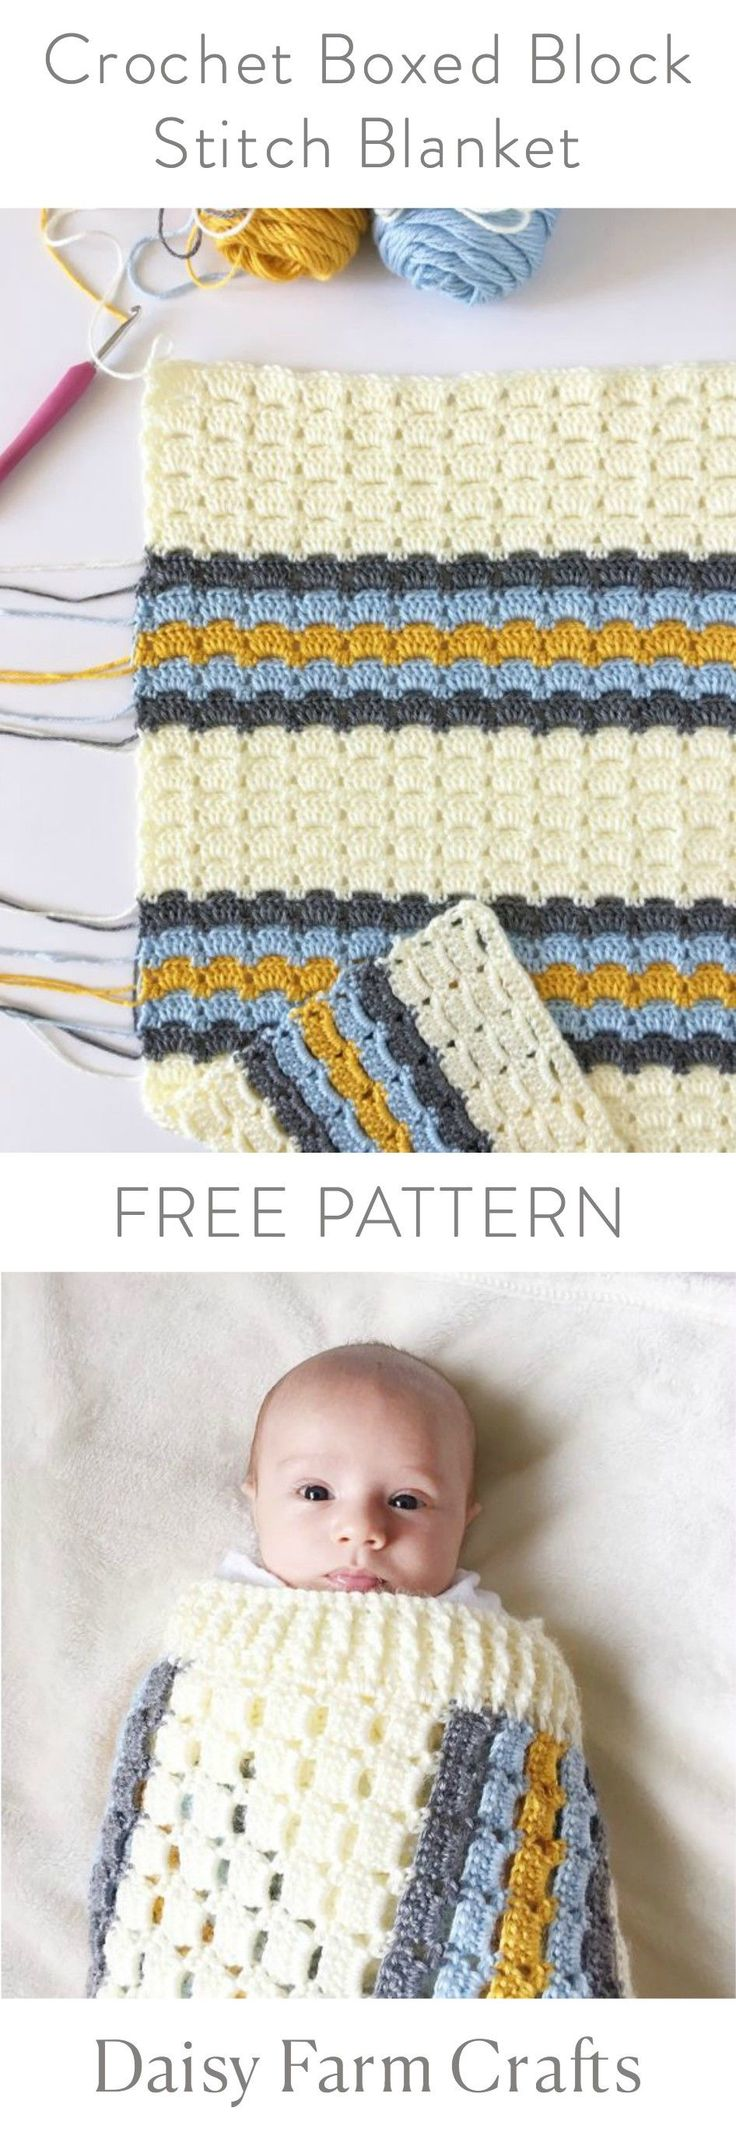 790 Best Baby Children Crochet Images On Pinterest Tm Diagram Ideas And Tips Juxtapost Free Pattern Boxed Block Stitch Blanket